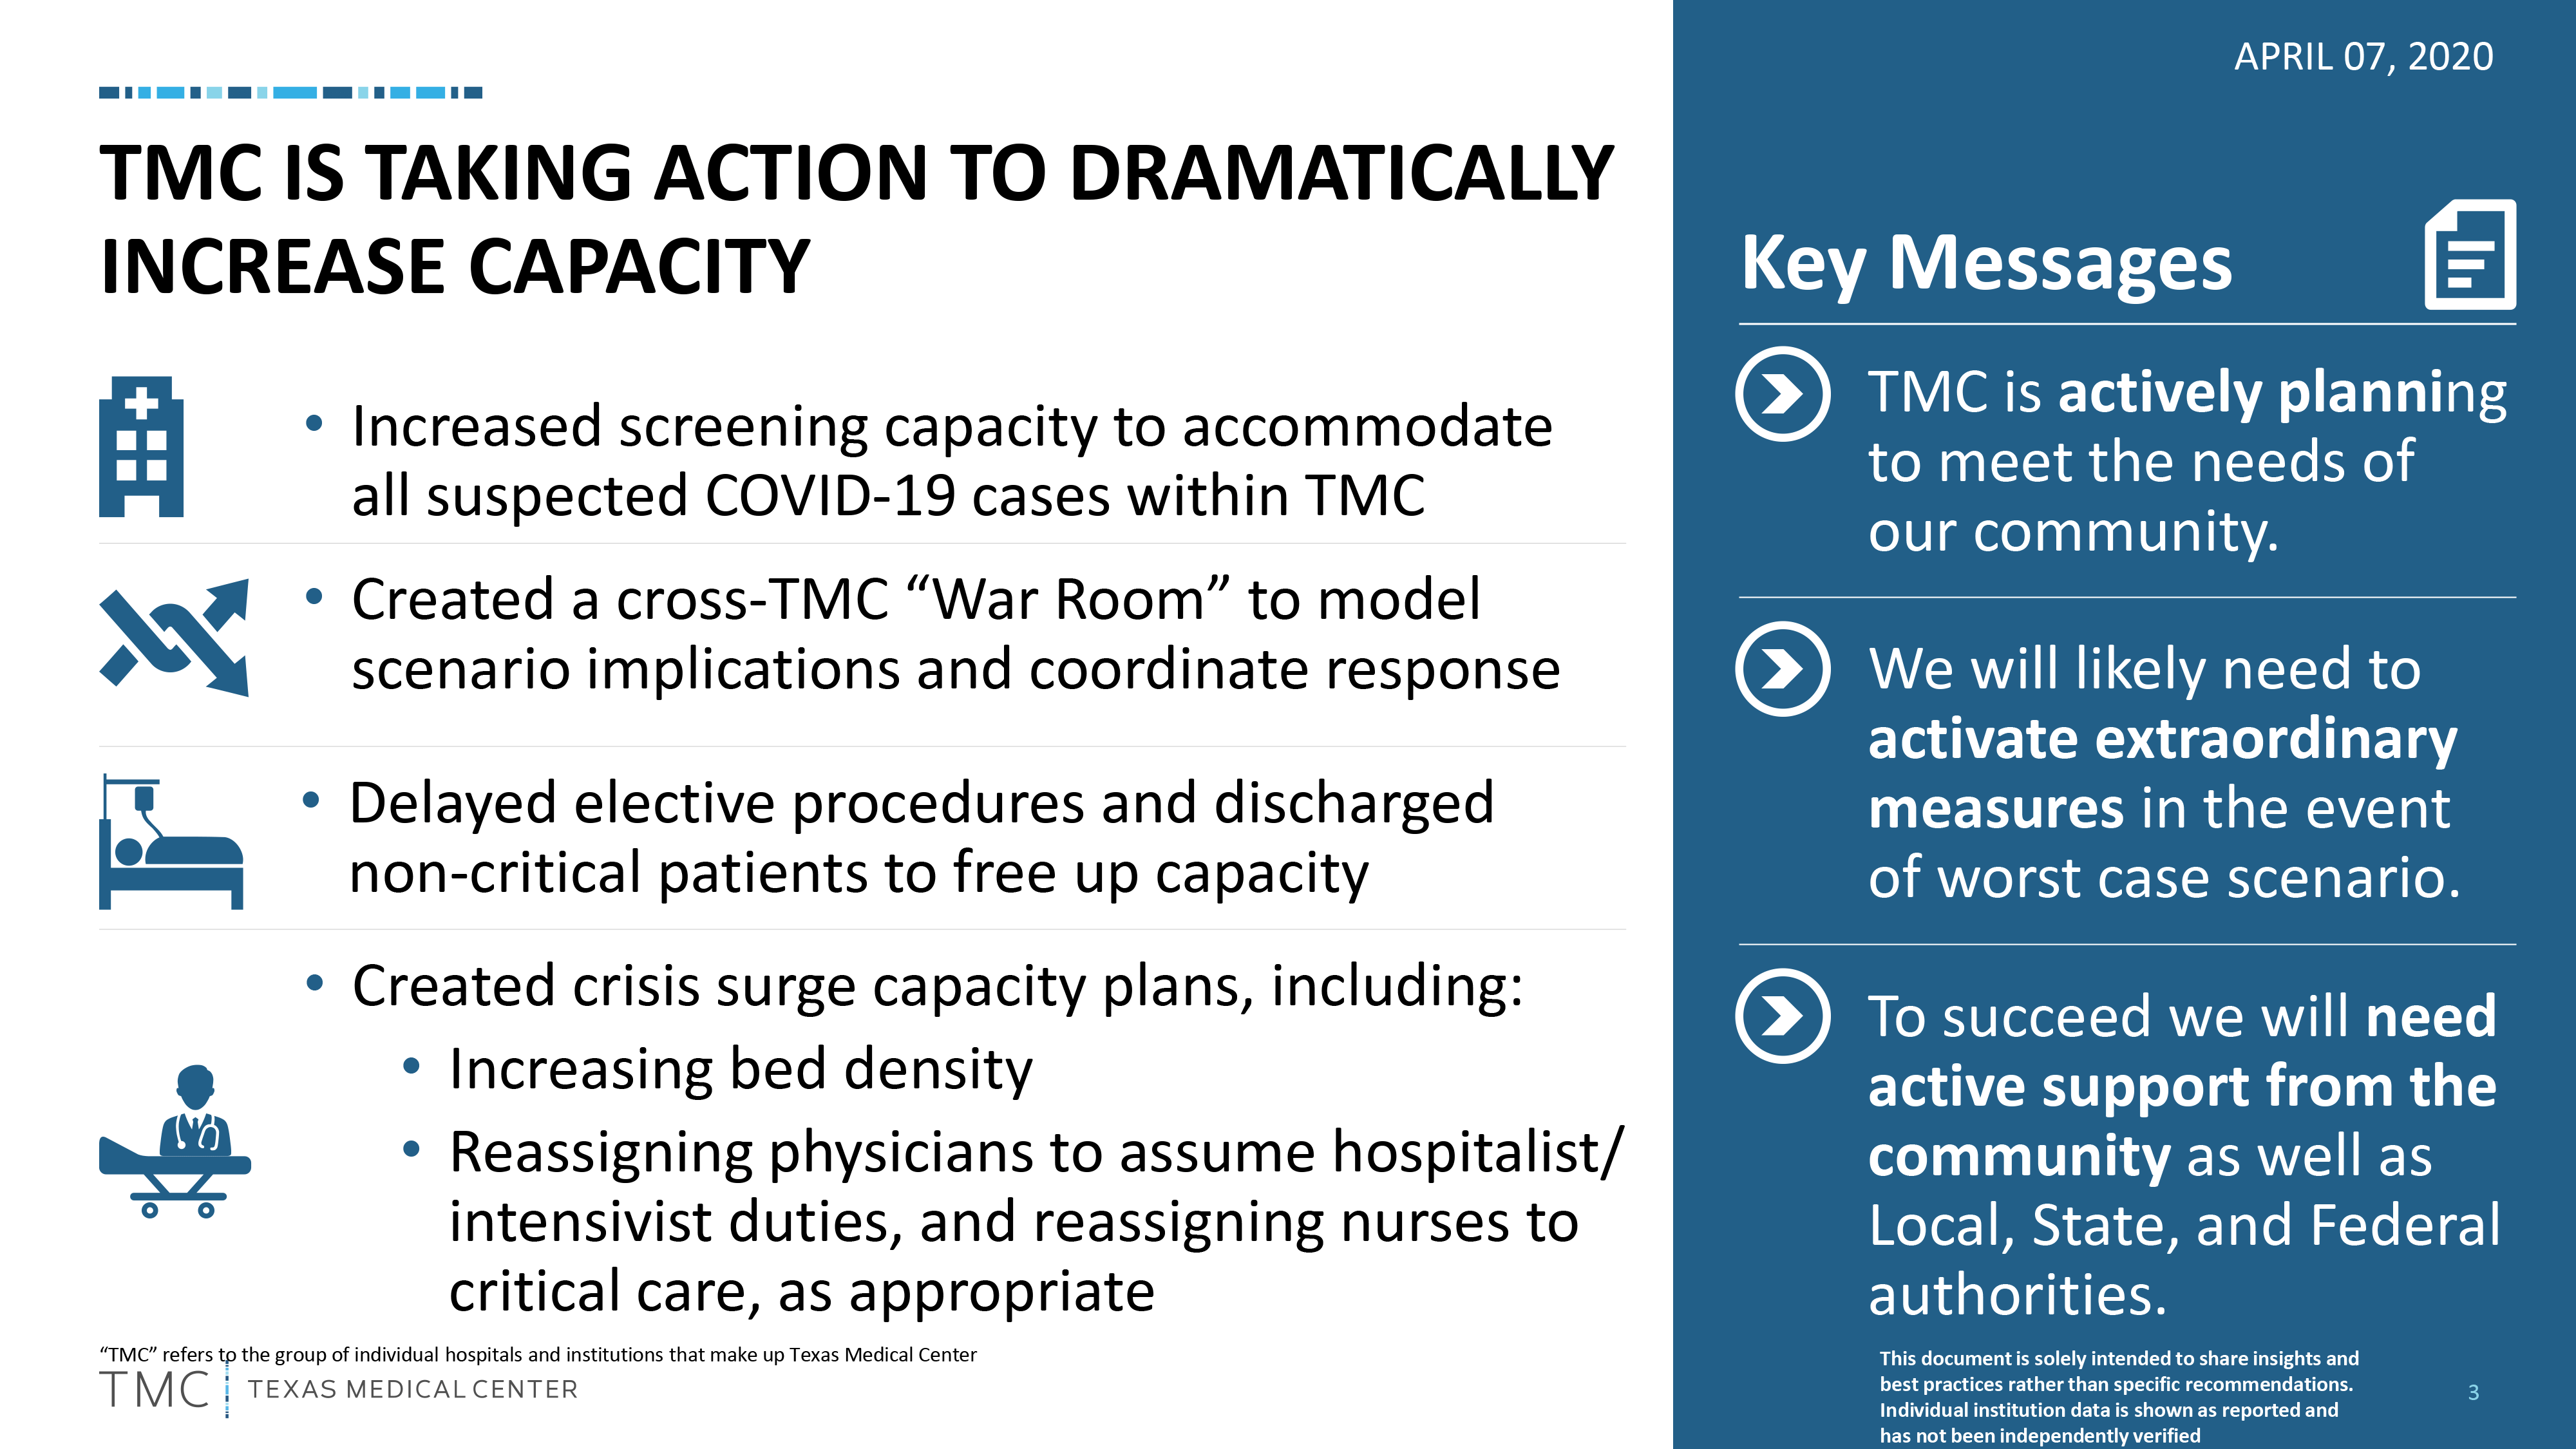 TMC is Taking Action to Increase Capacity